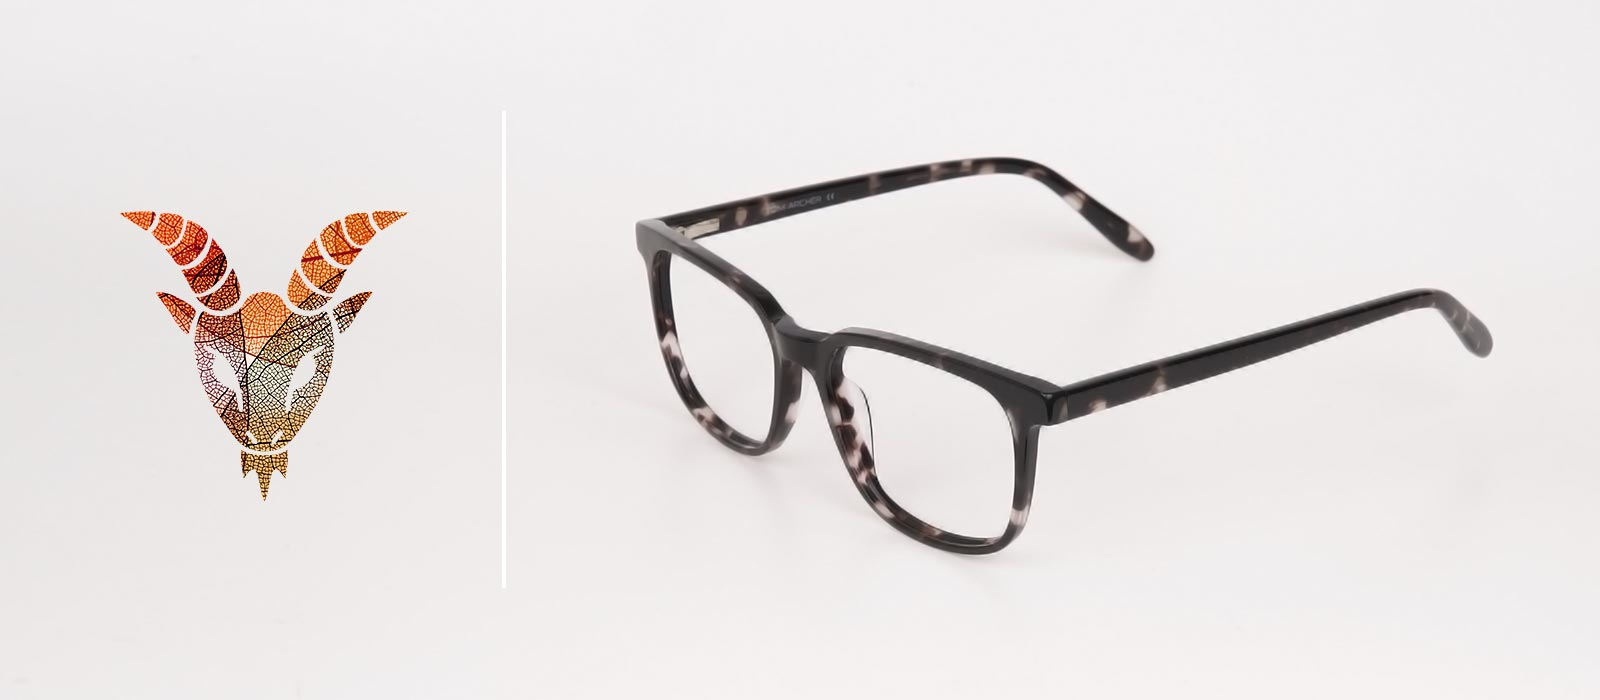 Eyewear trends 2019 with Capricorn Zodiac sign